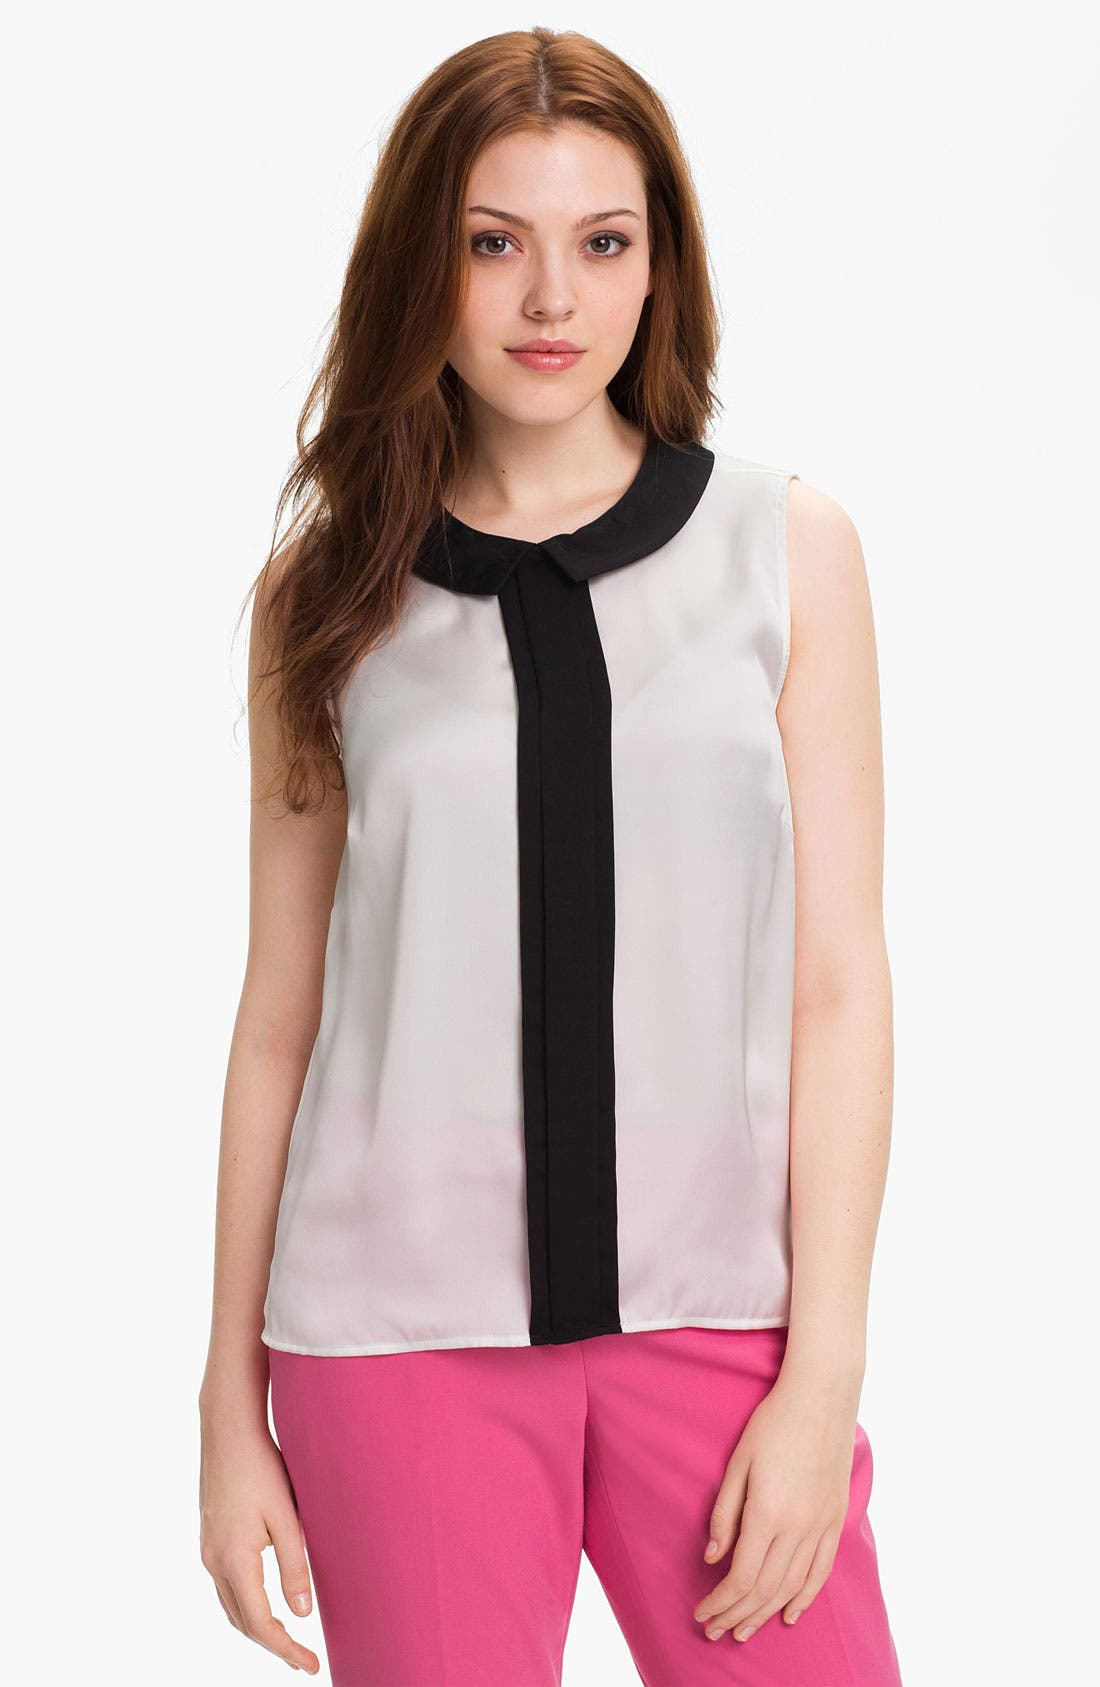 Alternate Image 1 Selected - Vince Camuto Sleeveless Collared Blouse